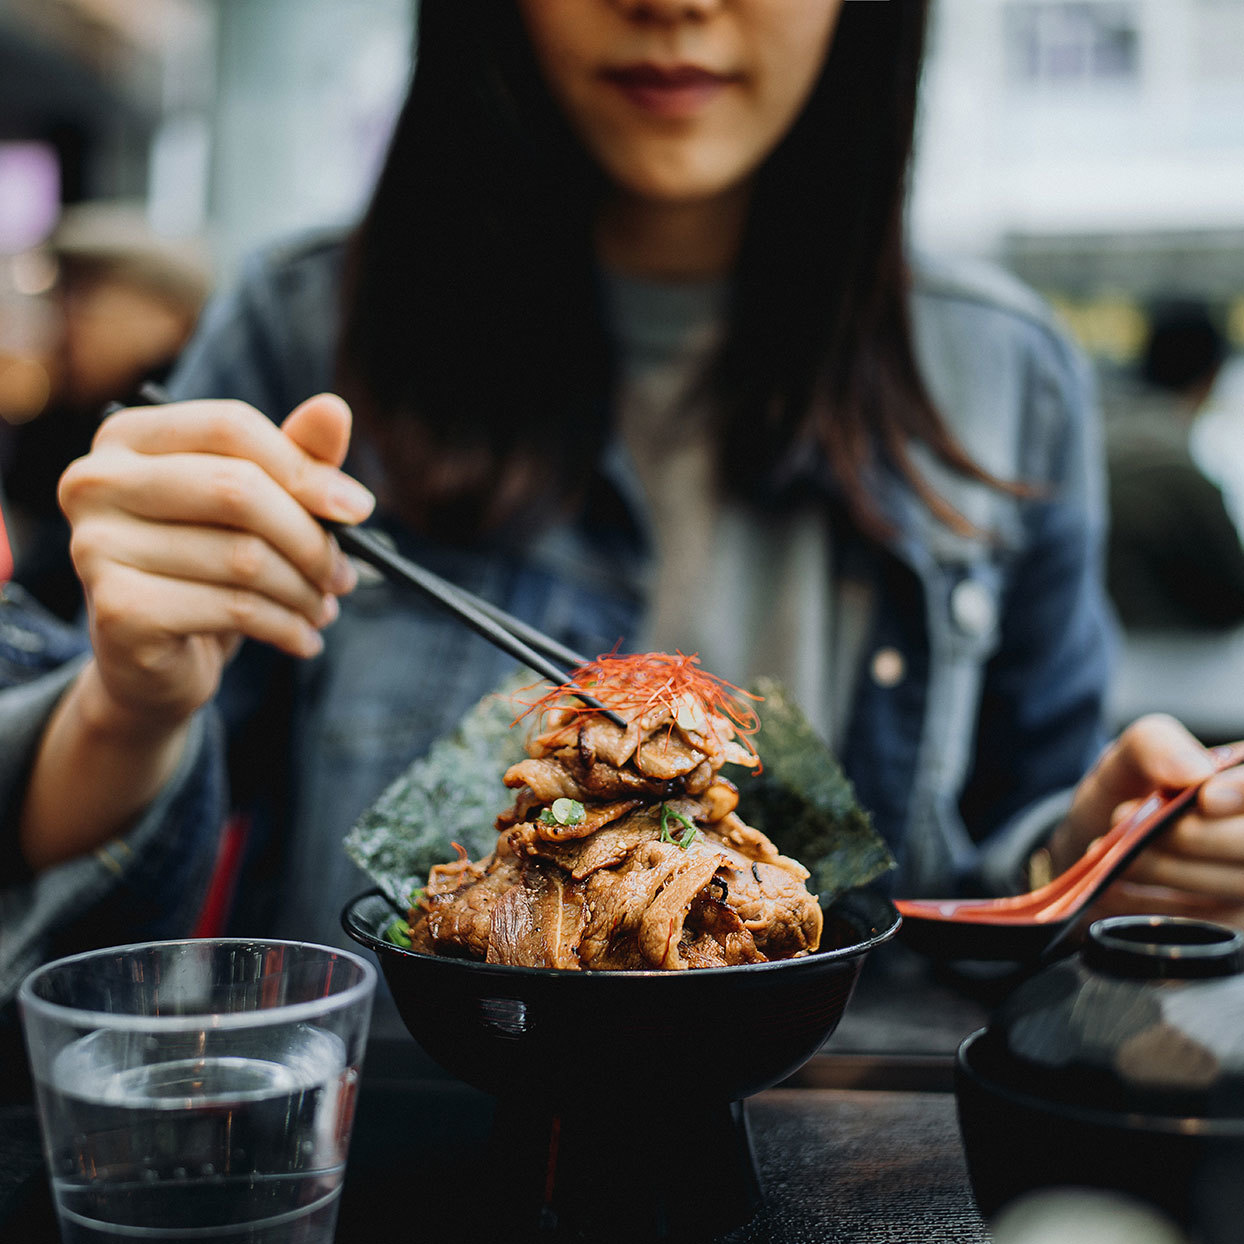 woman eating meat with chopsticks